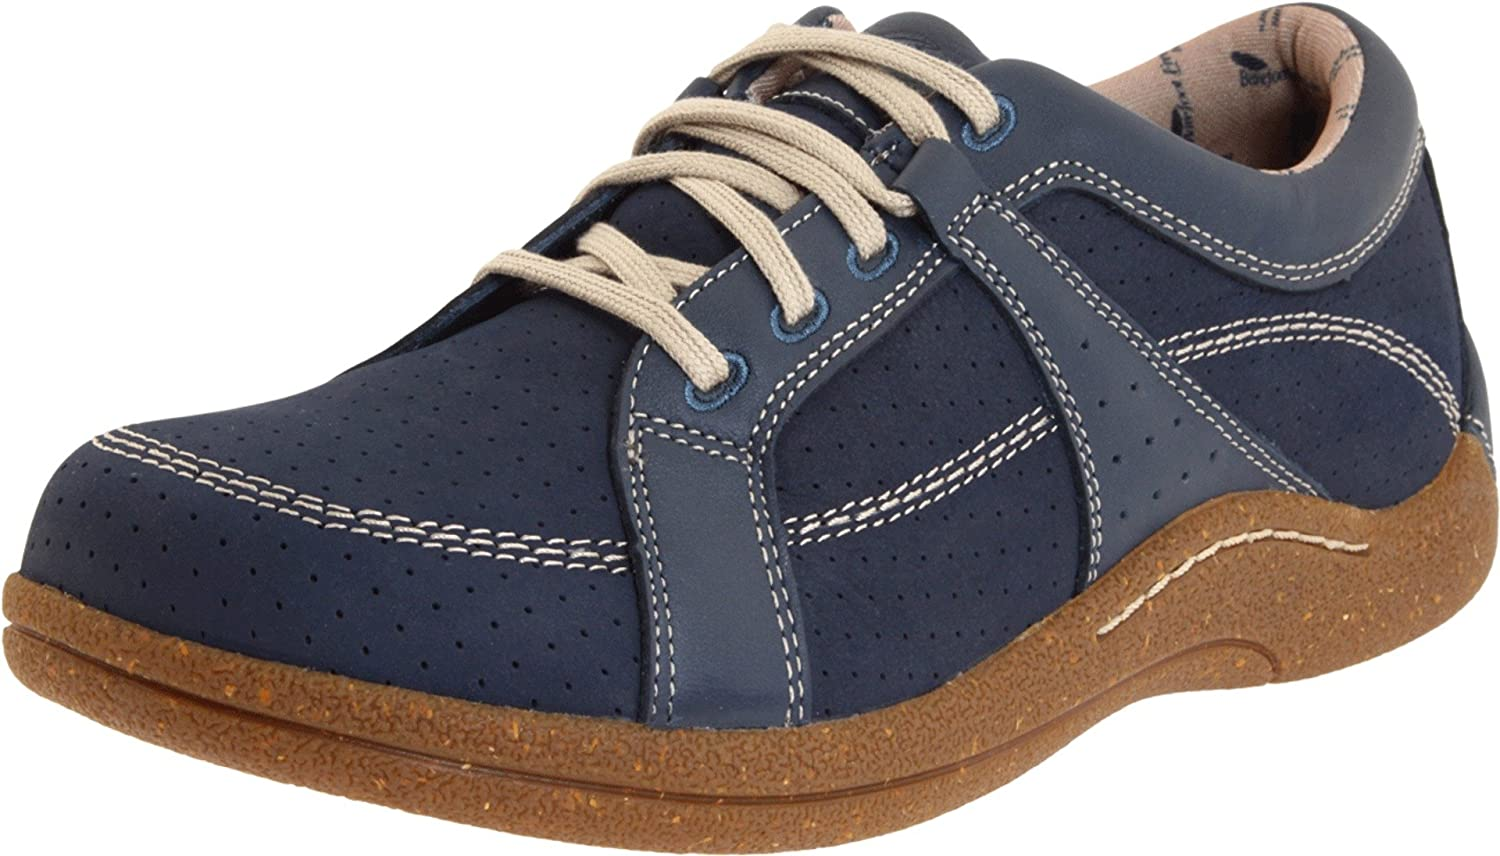 Drew Shoe Women's Genevar Oxfords B0058ZUITK 5 B(M) US|Denim Leather/Nubuck